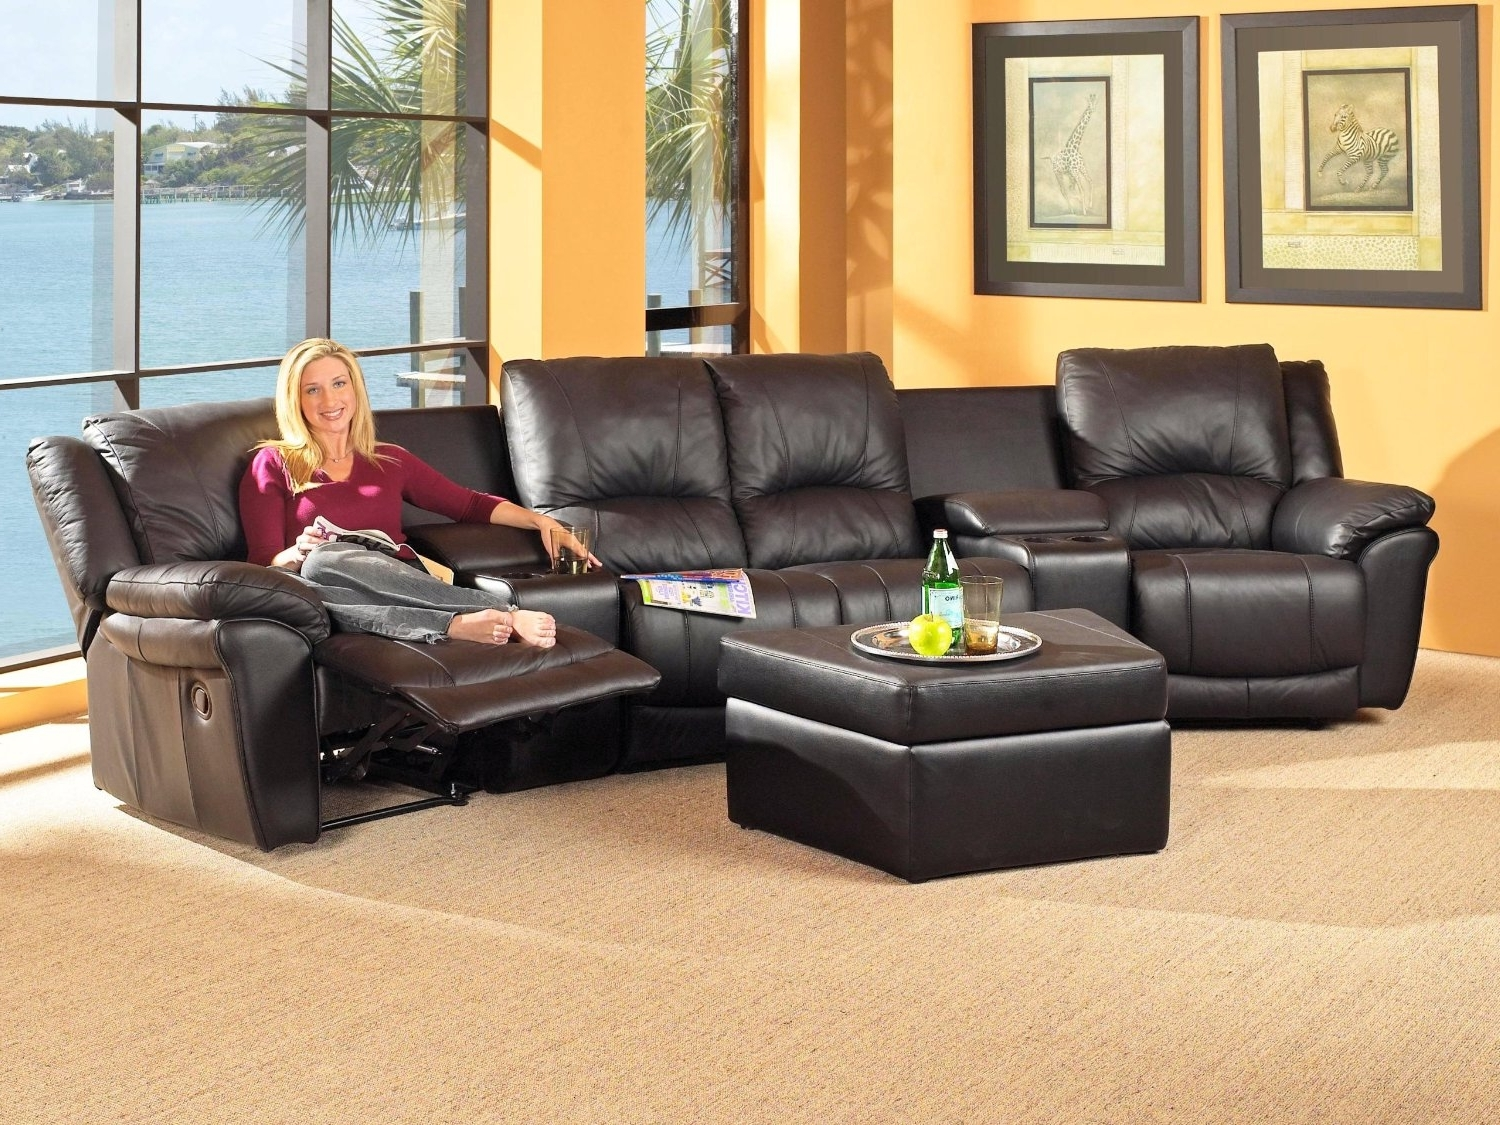 Sectional Sofas With Recliners For Small Spaces Pertaining To Most Recent Small Space Sectional Sofa – Decofurnish (View 16 of 20)